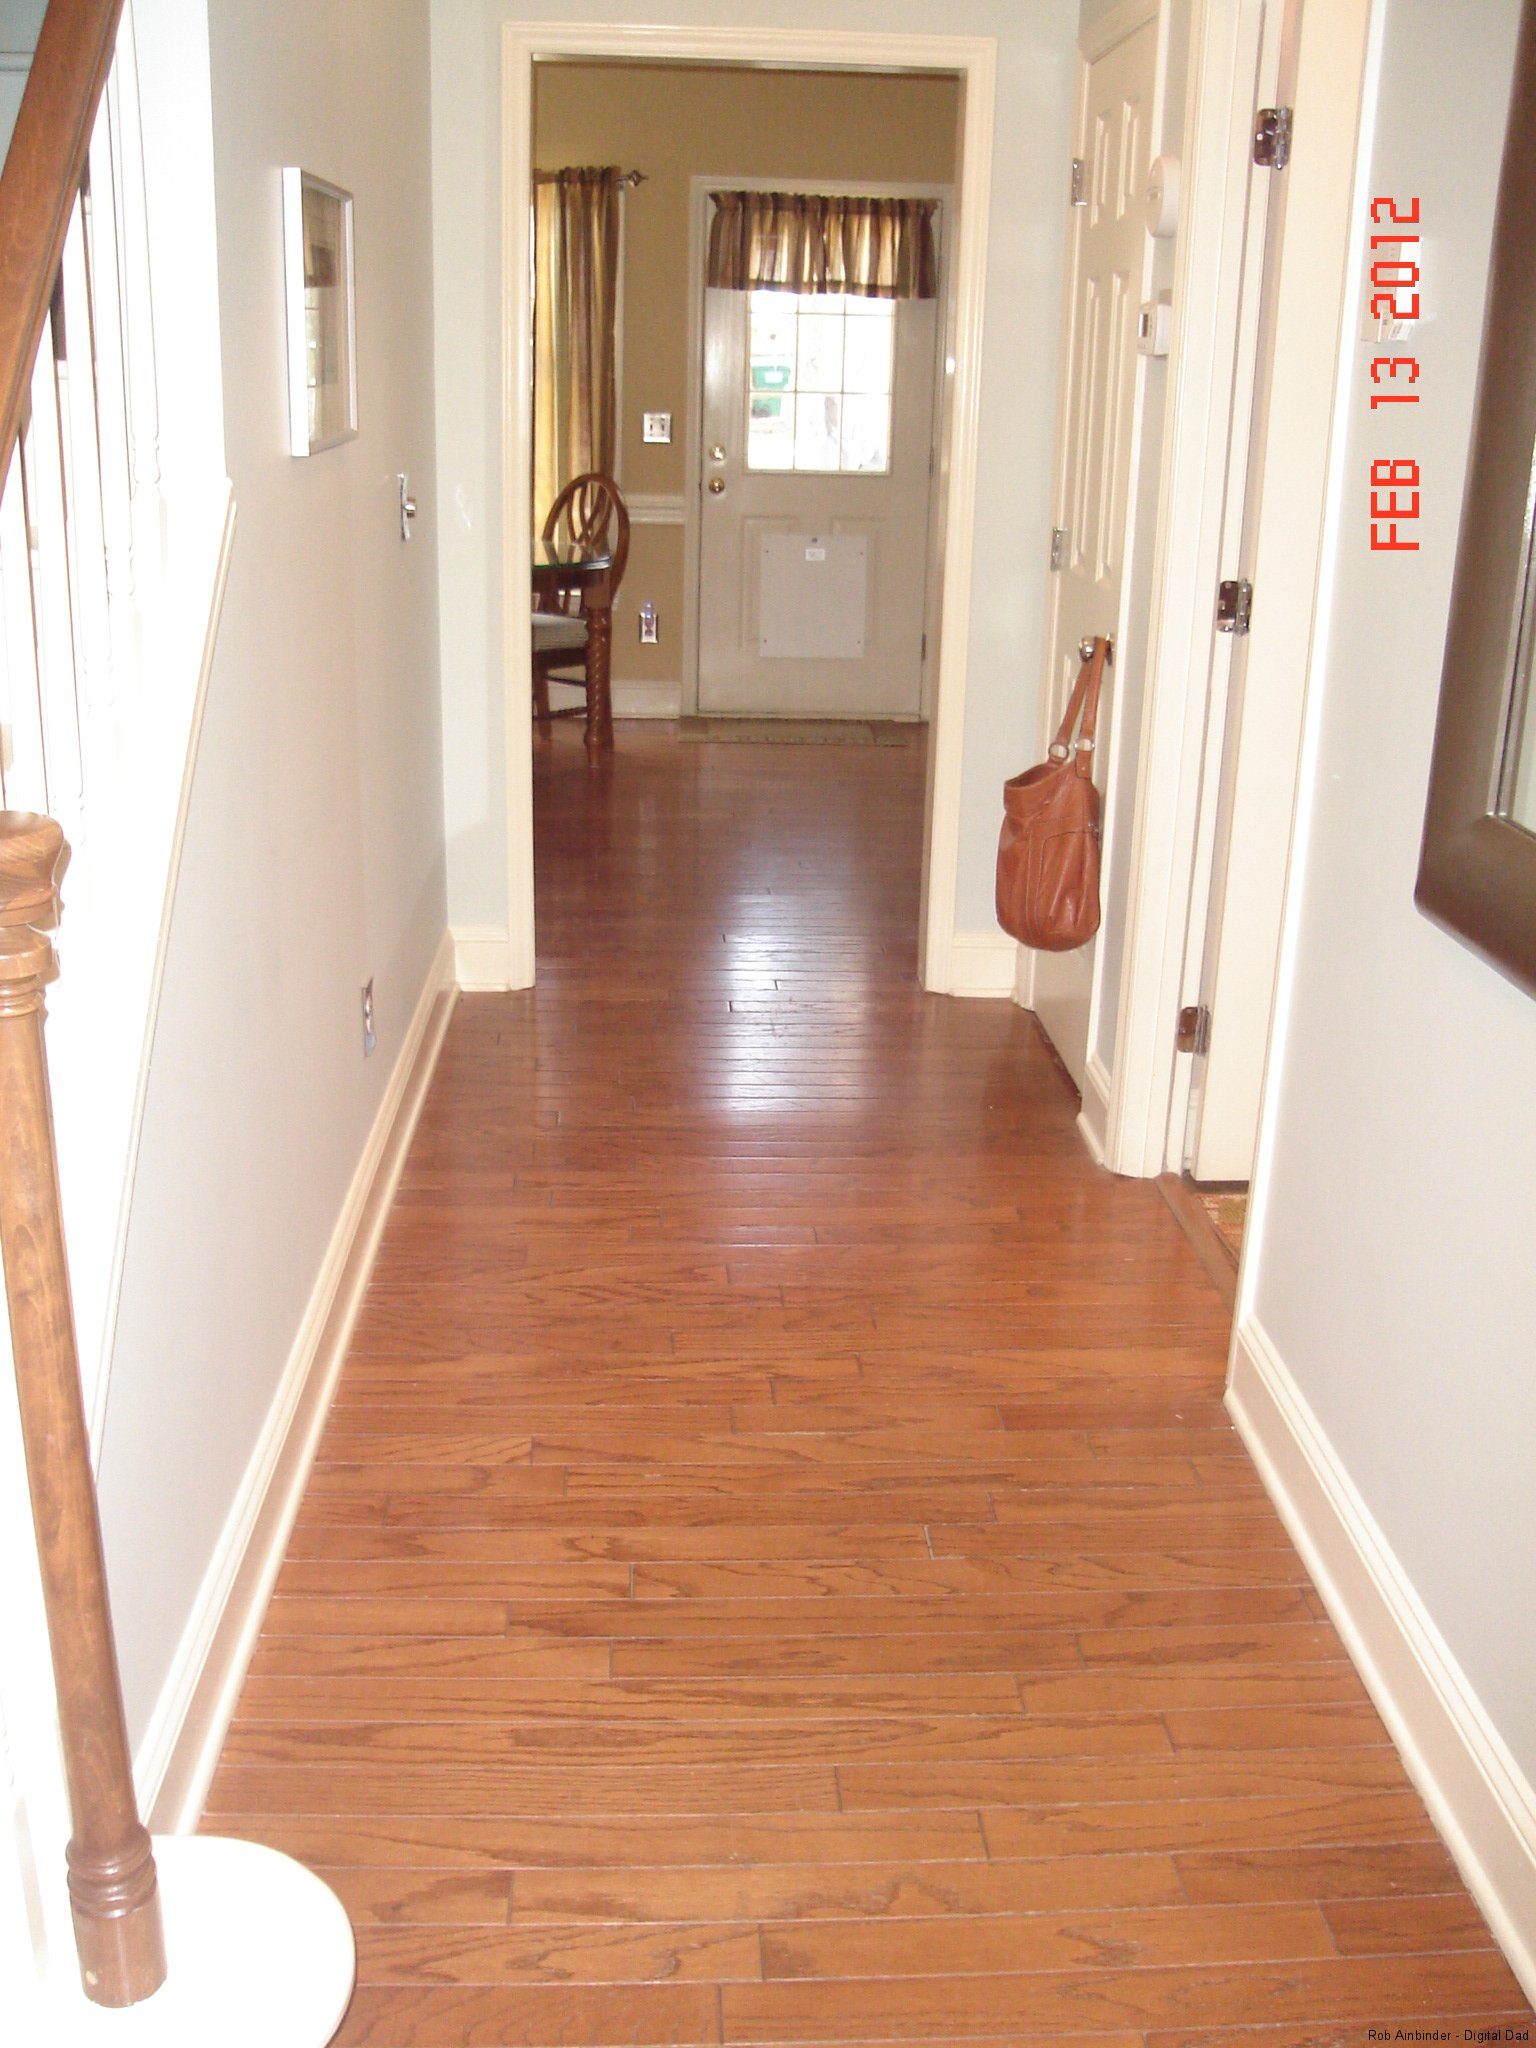 Hardwood Floor Layout incorrect flooring layout Hardwood Flooring Layout Direction Bathrooms Wood Floors